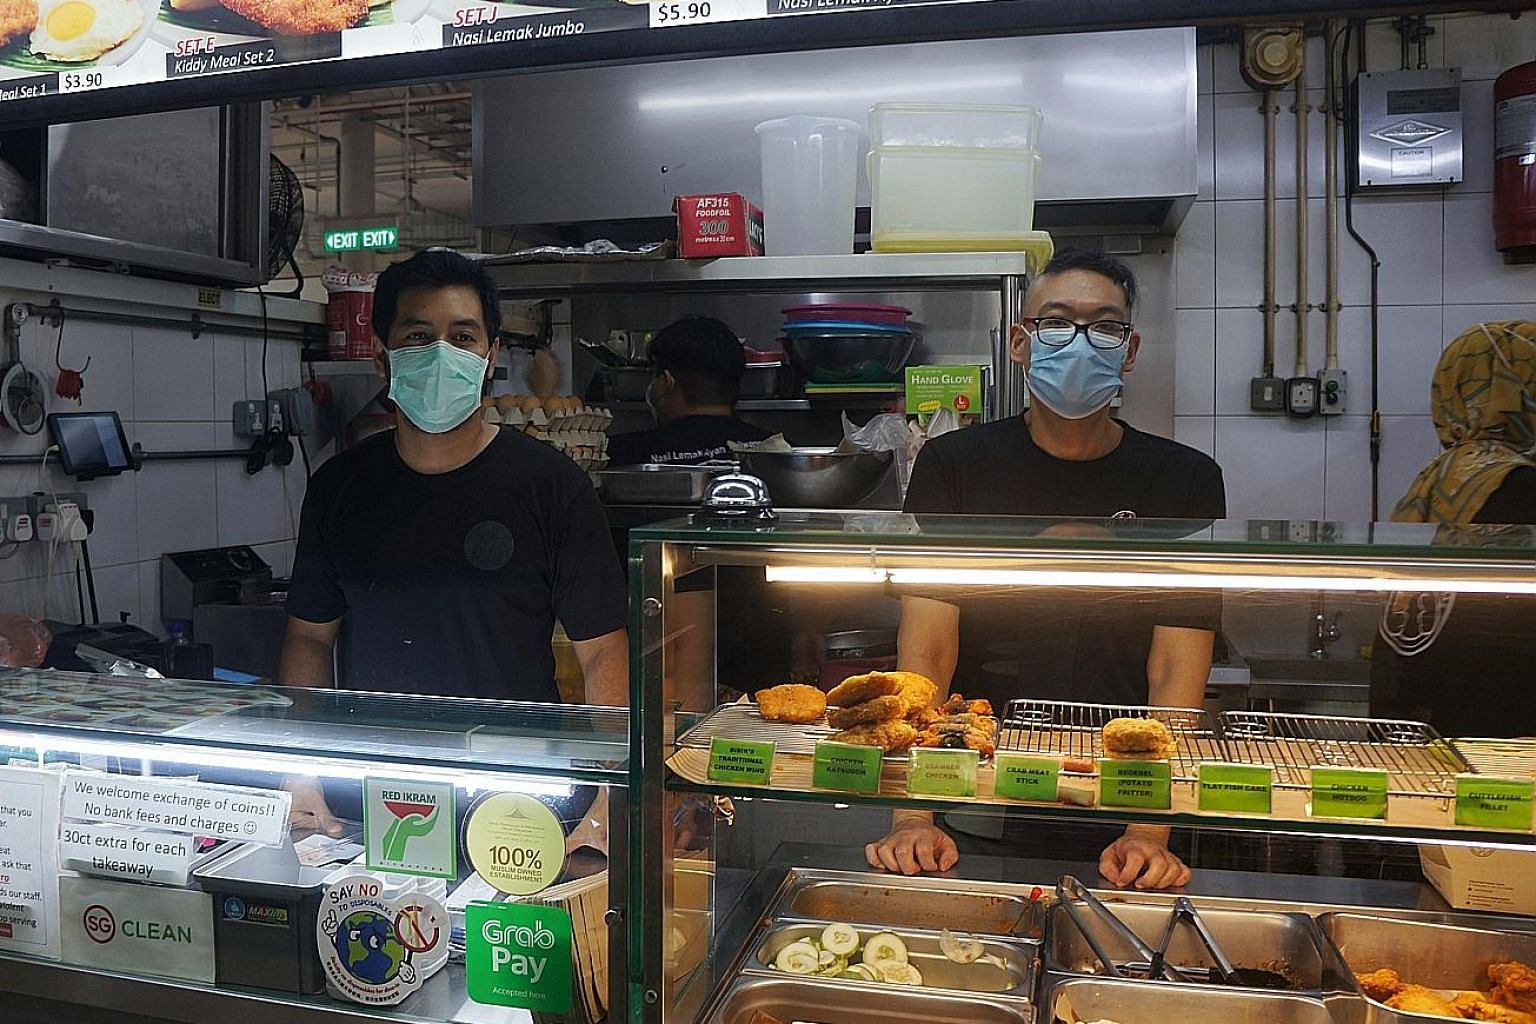 Mr Patrick Foo (right) is grateful for the stability that the work at Mr Noorman Mubarak's nasi lemak stall provides. He said his salary is enough for him to survive on and help should be offered to others in need.